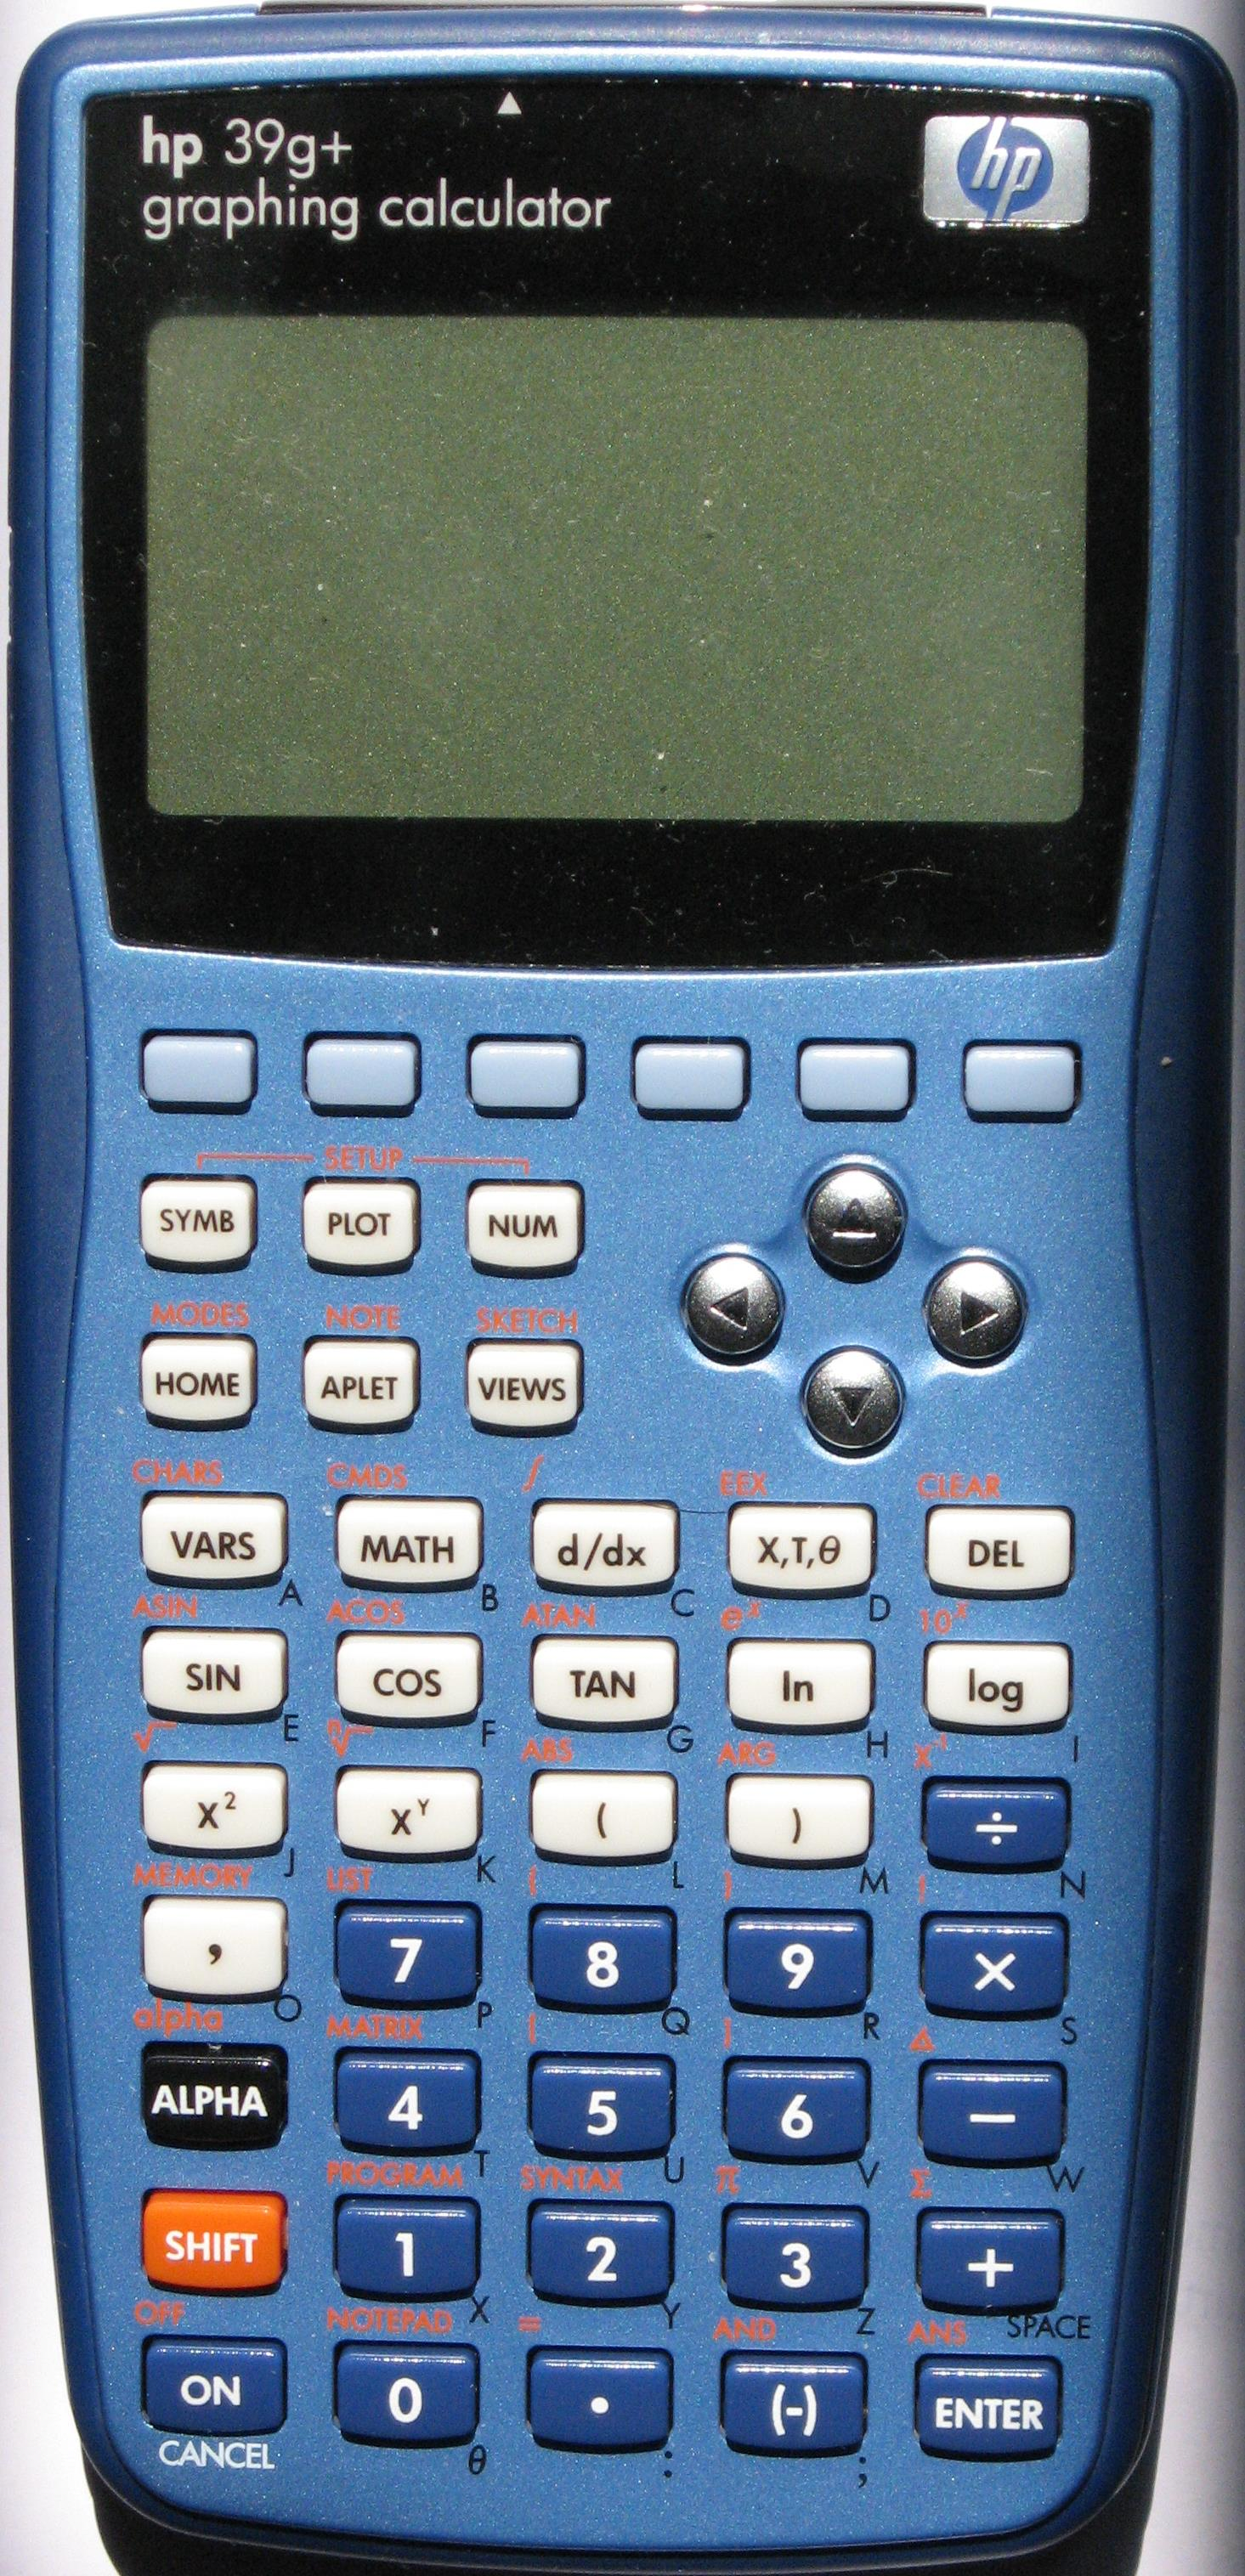 Comparison of HP graphing calculators